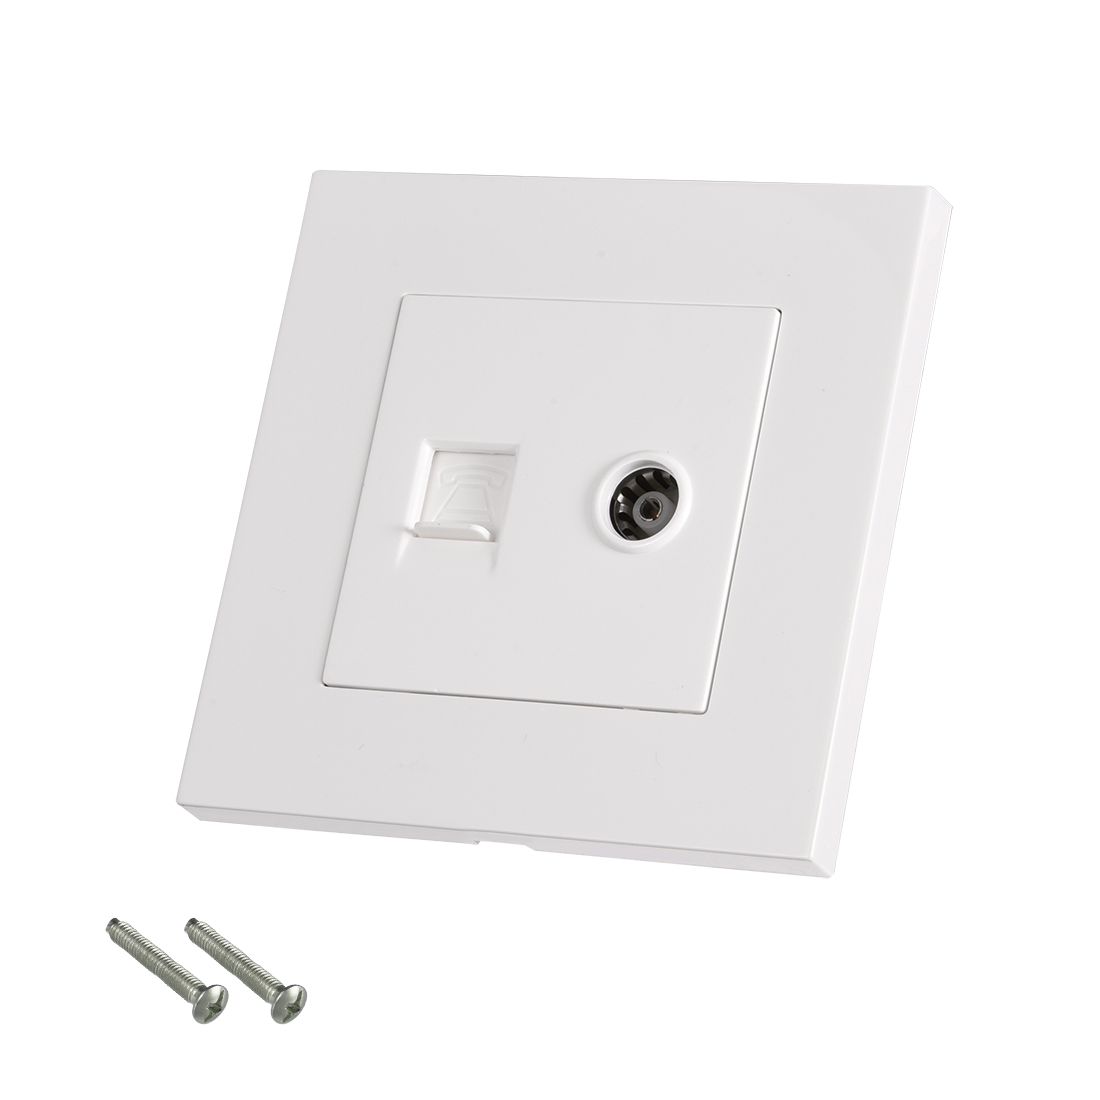 RJ11 Telephone TV Aerial Double Ports Socket Wall Plate Panel 86 Type - image 3 of 3